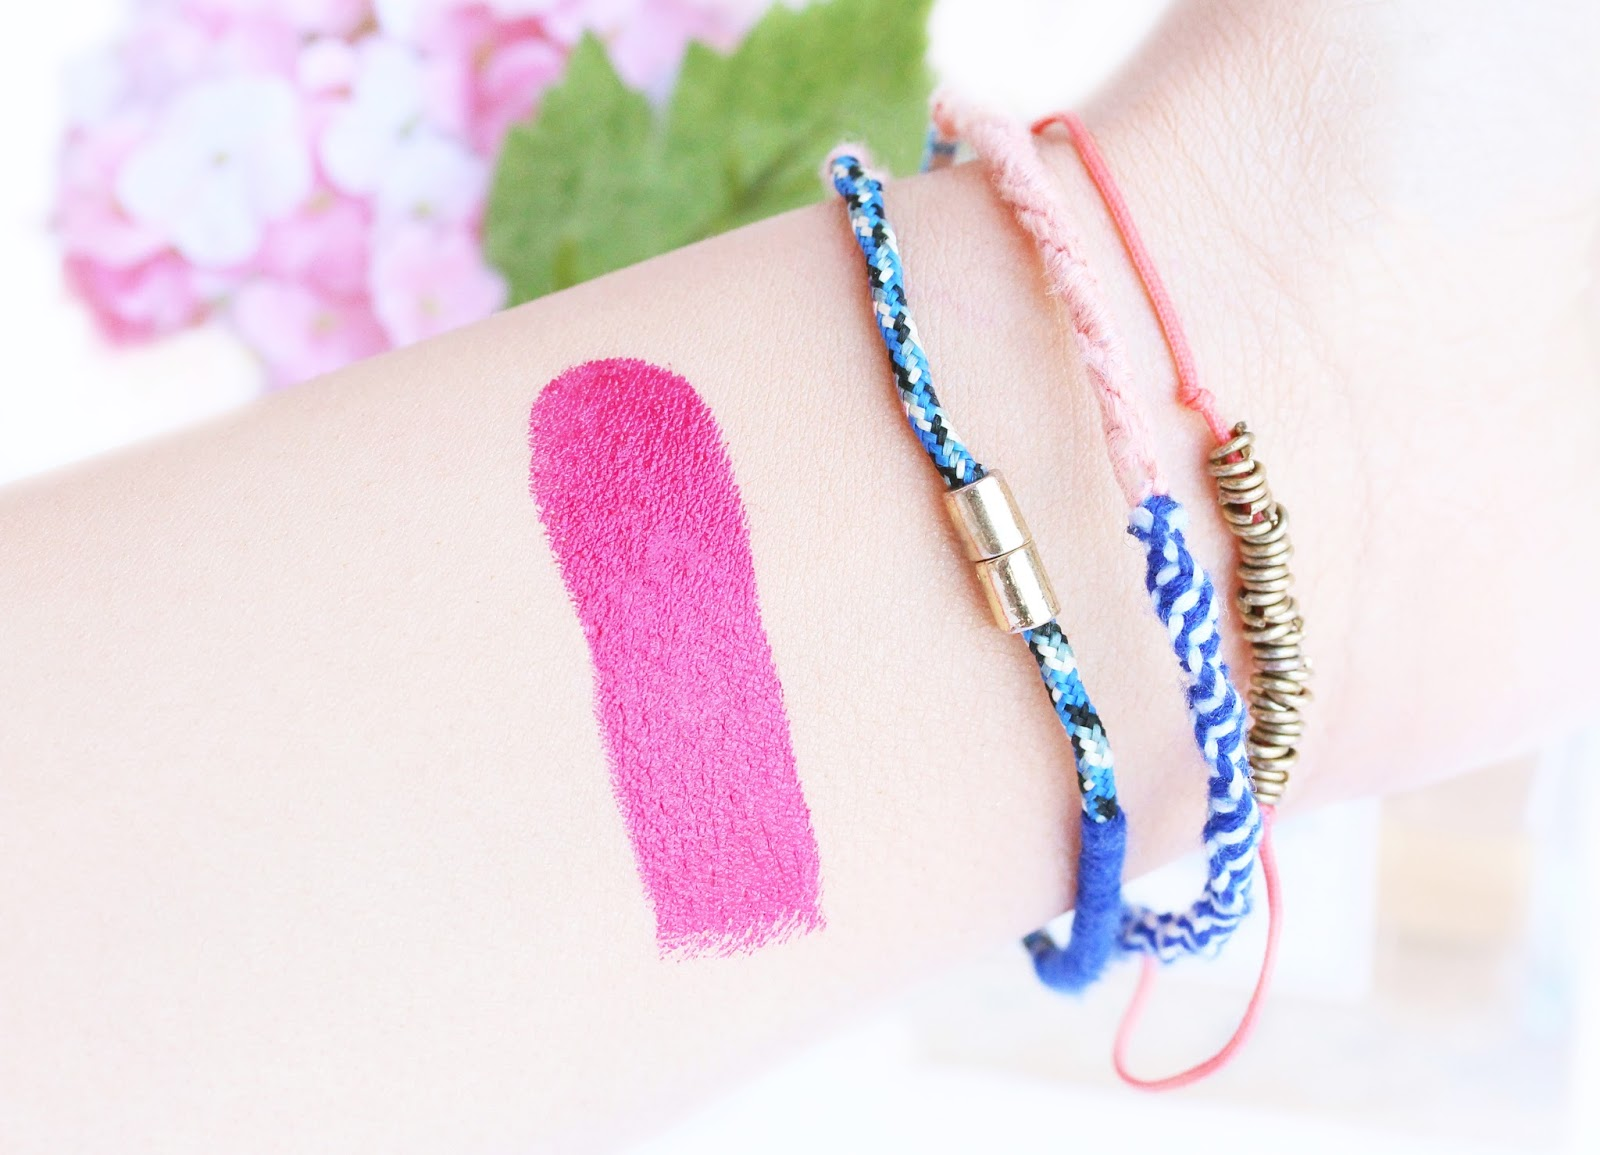 YSL Rouge Volupte in #11 Rose Culte Swatches